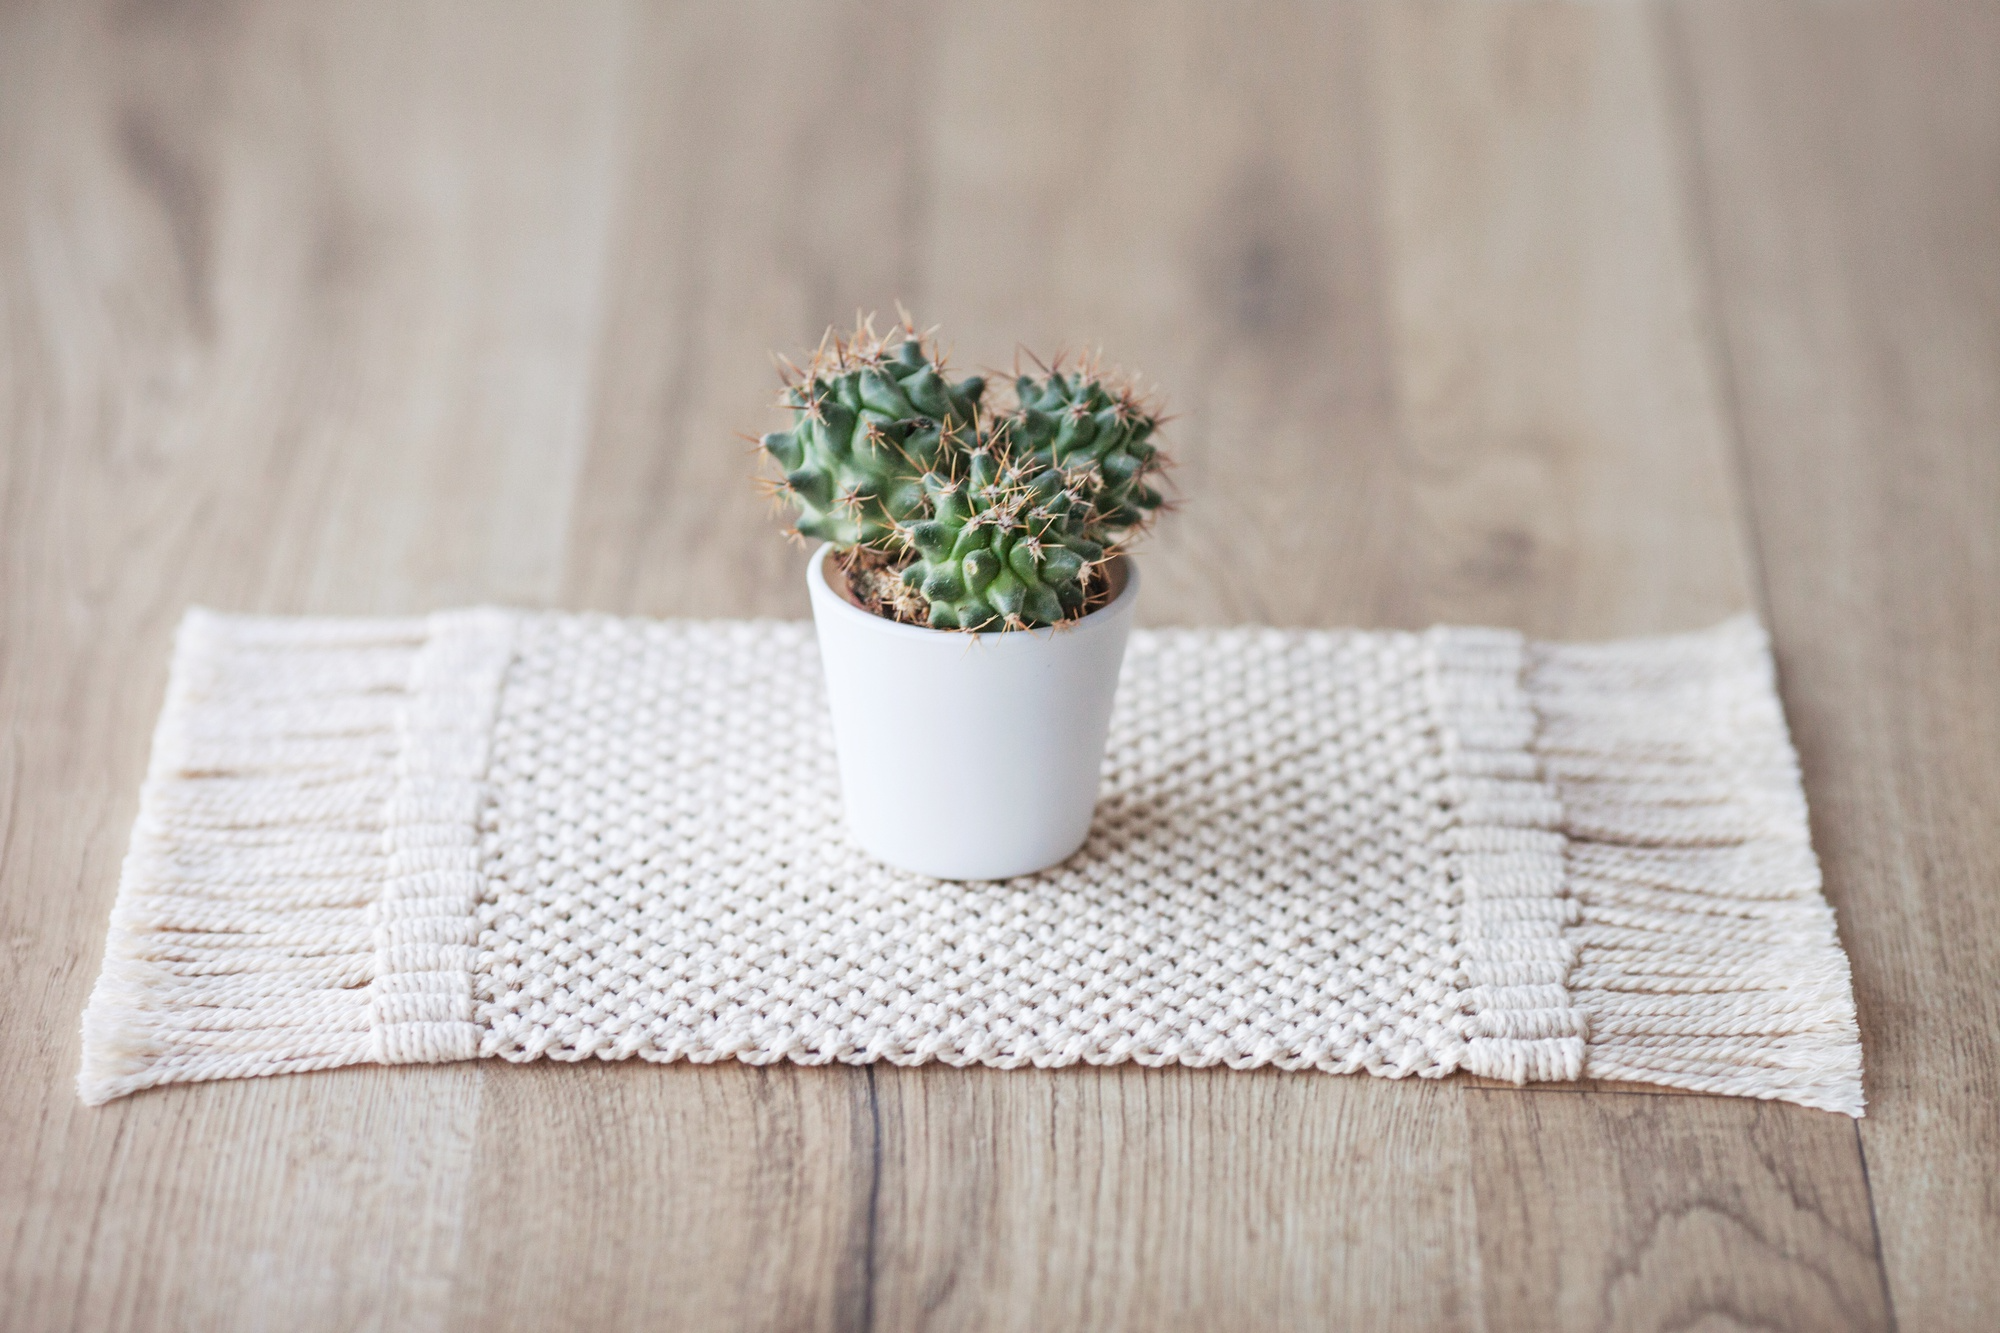 Small potted plant on yarn rug